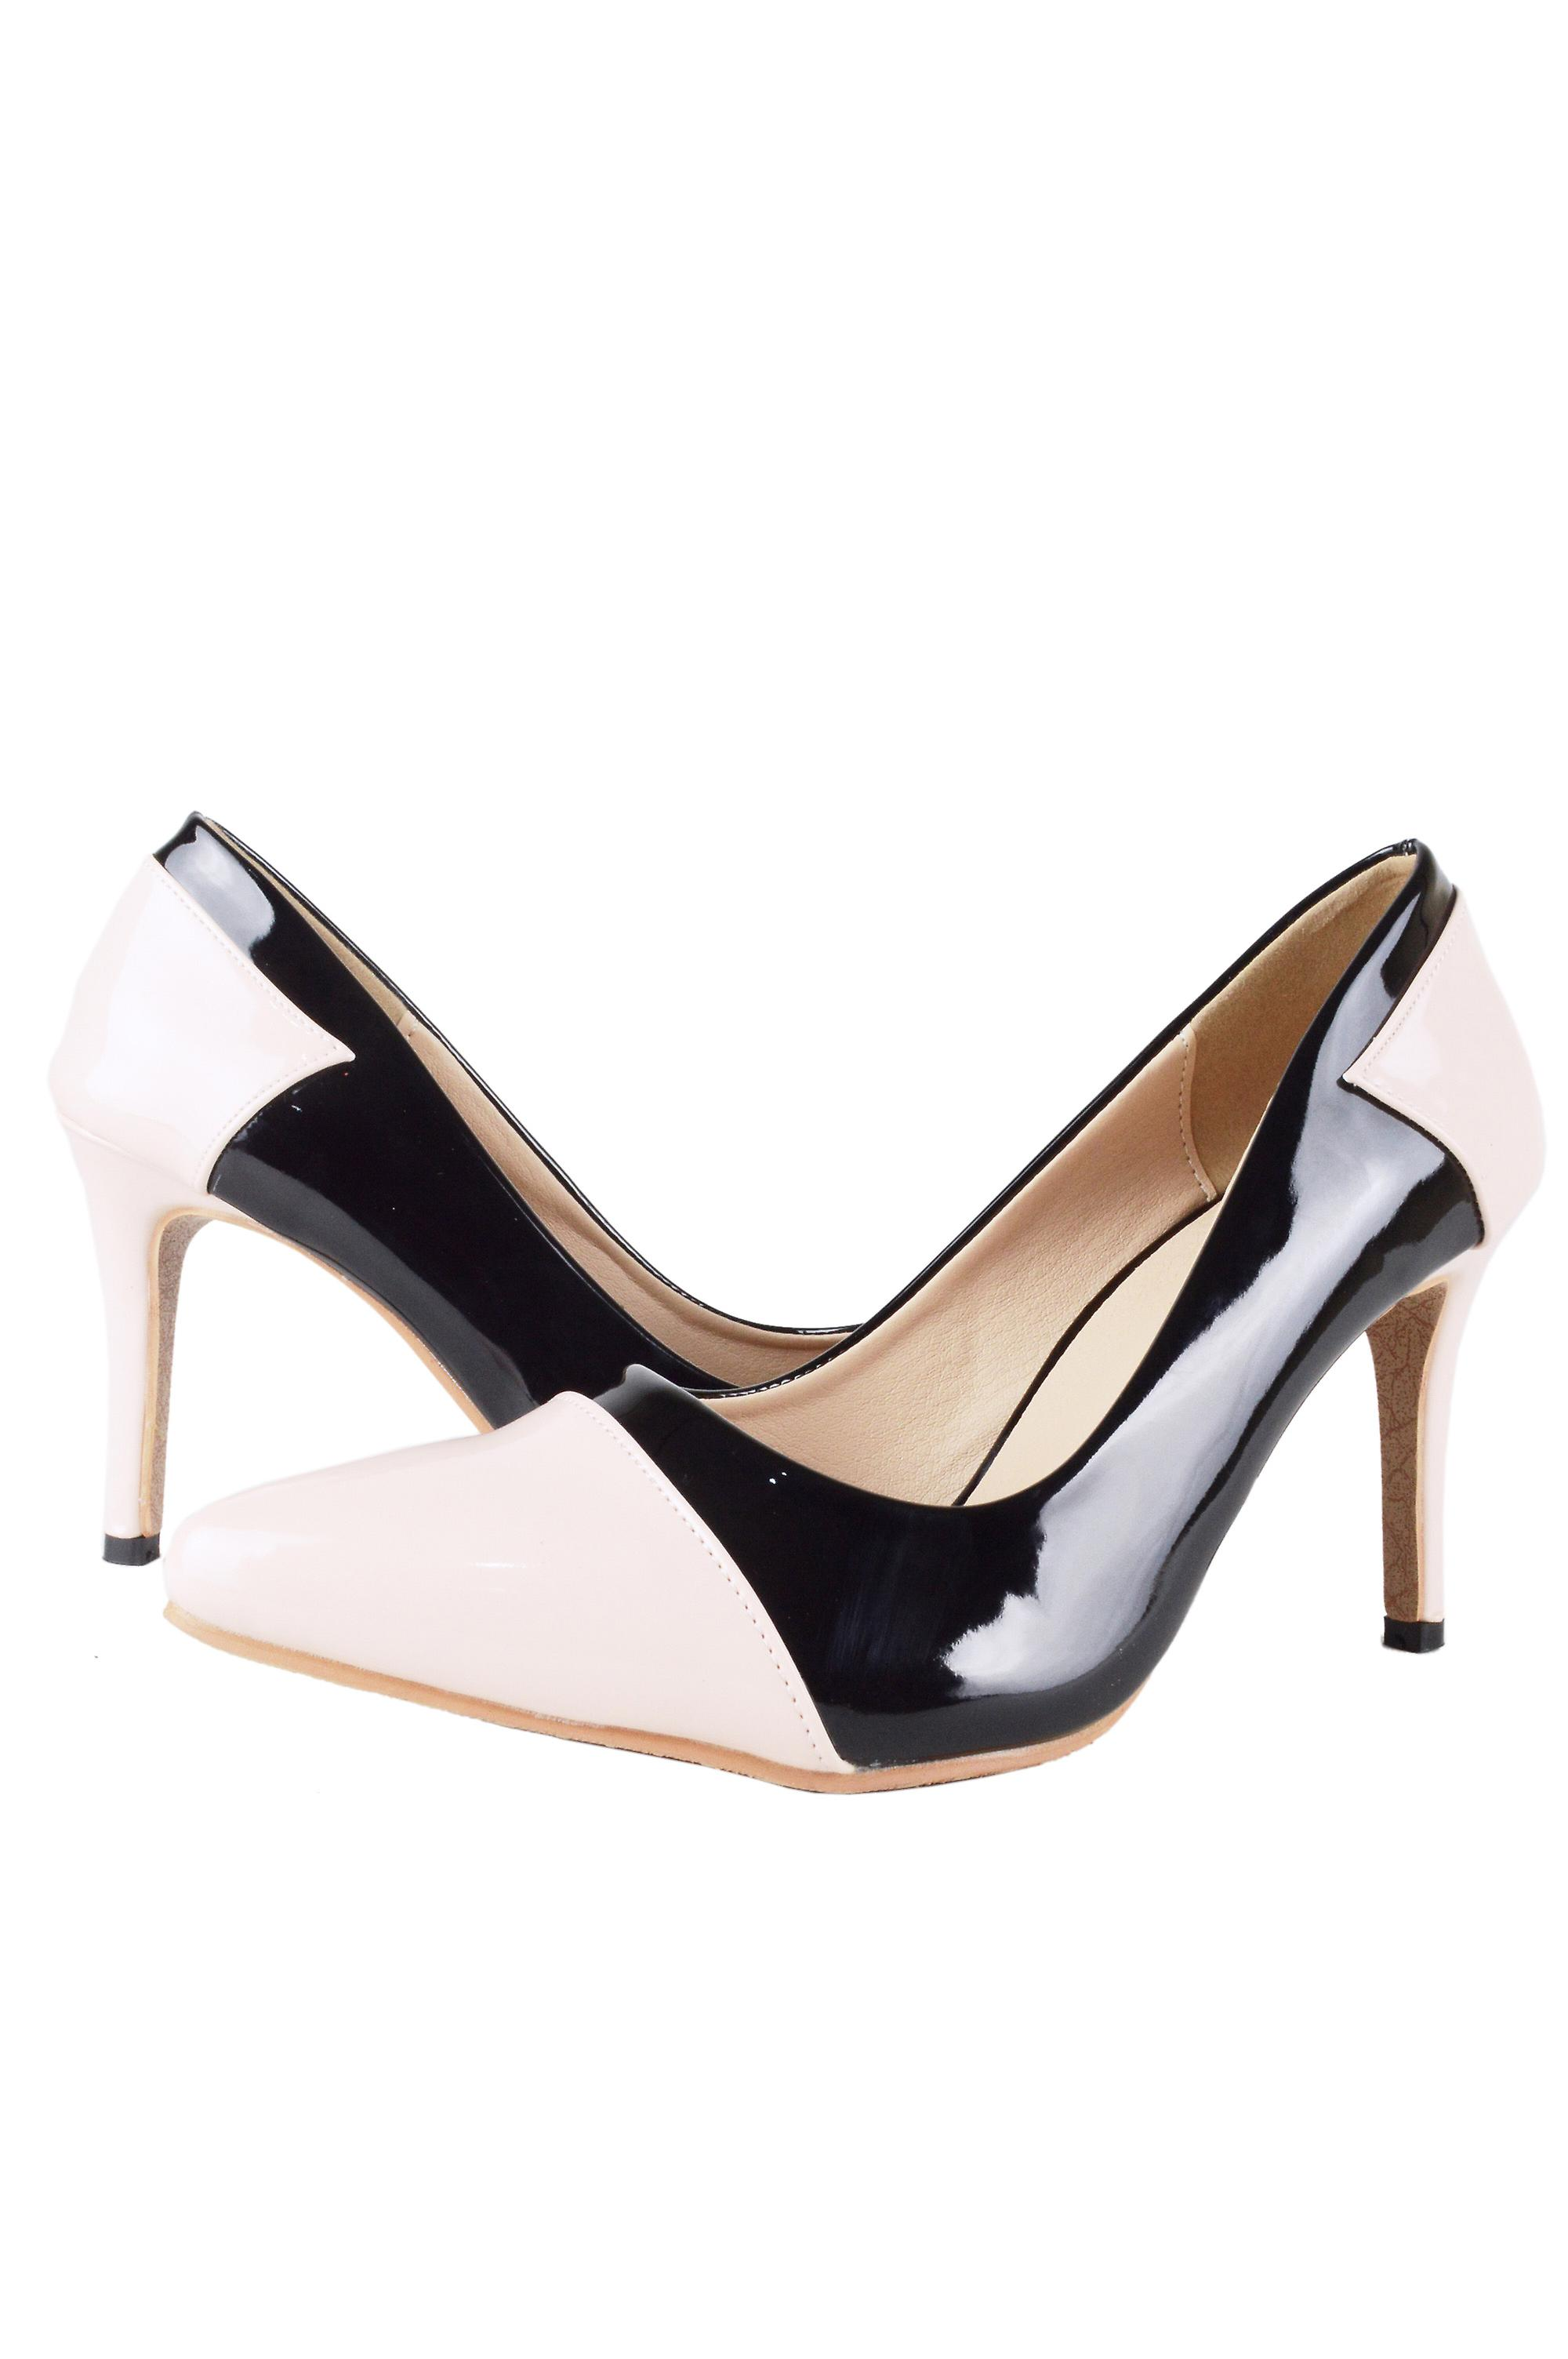 Lovemystyle Black And Nude Patent Court Shoe Heels